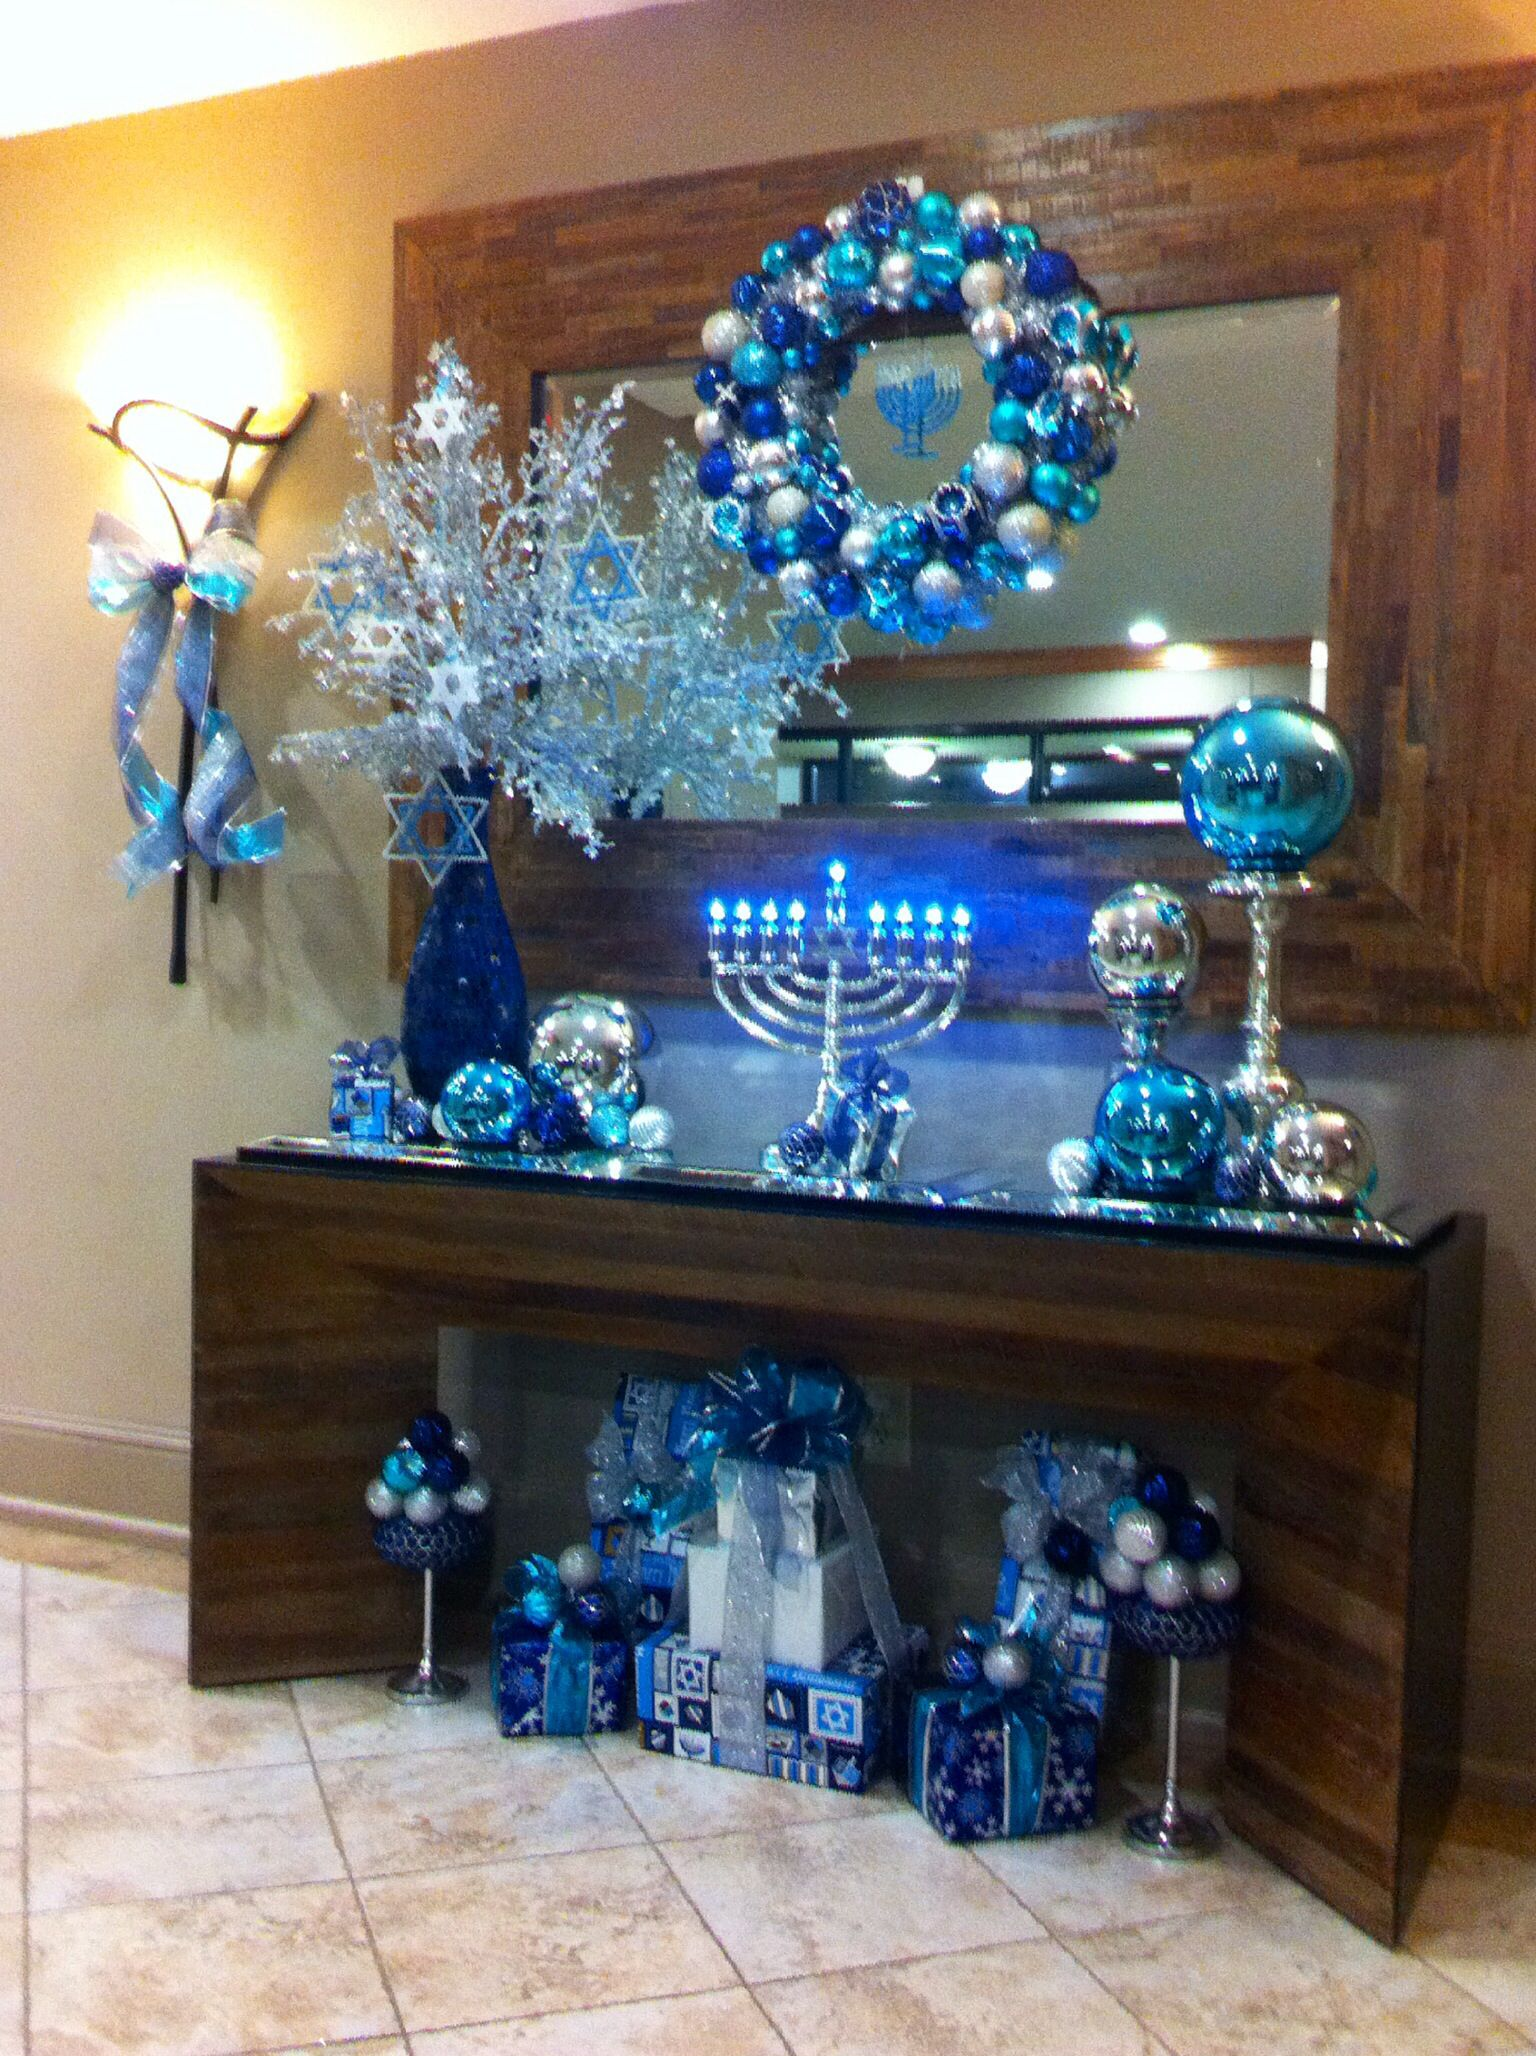 Hanukkah Decorations Really Like The Giant Glass Ball On The